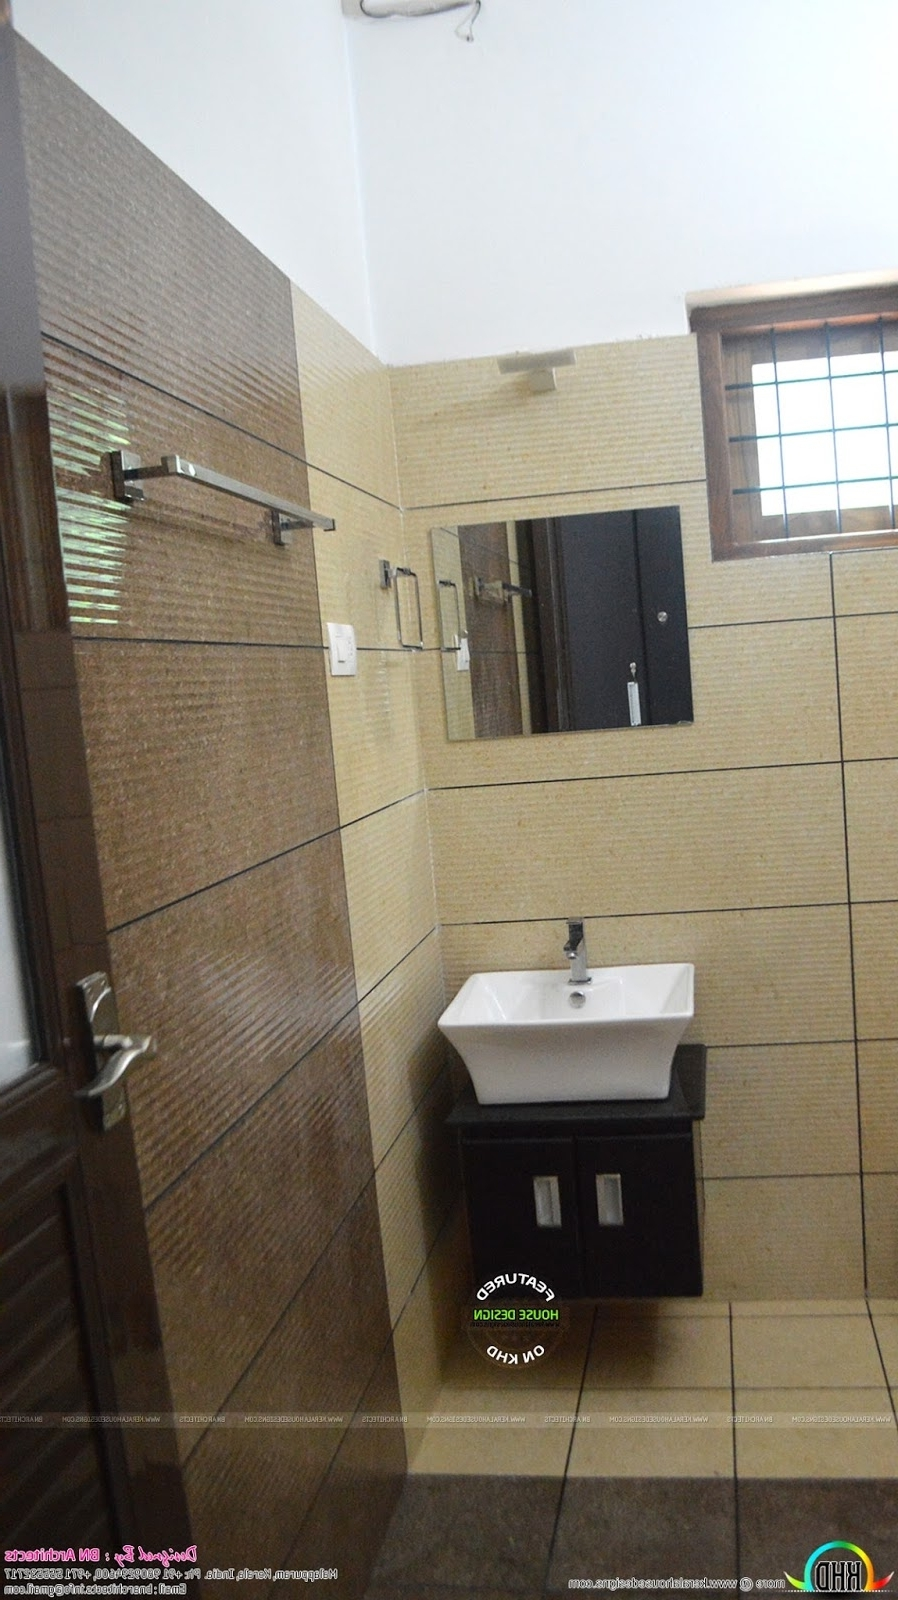 Kerala Style Simple Bathroom Designs Pani Bathroom Design Idea 30+ Kerala House Bathroom Designs Ideas